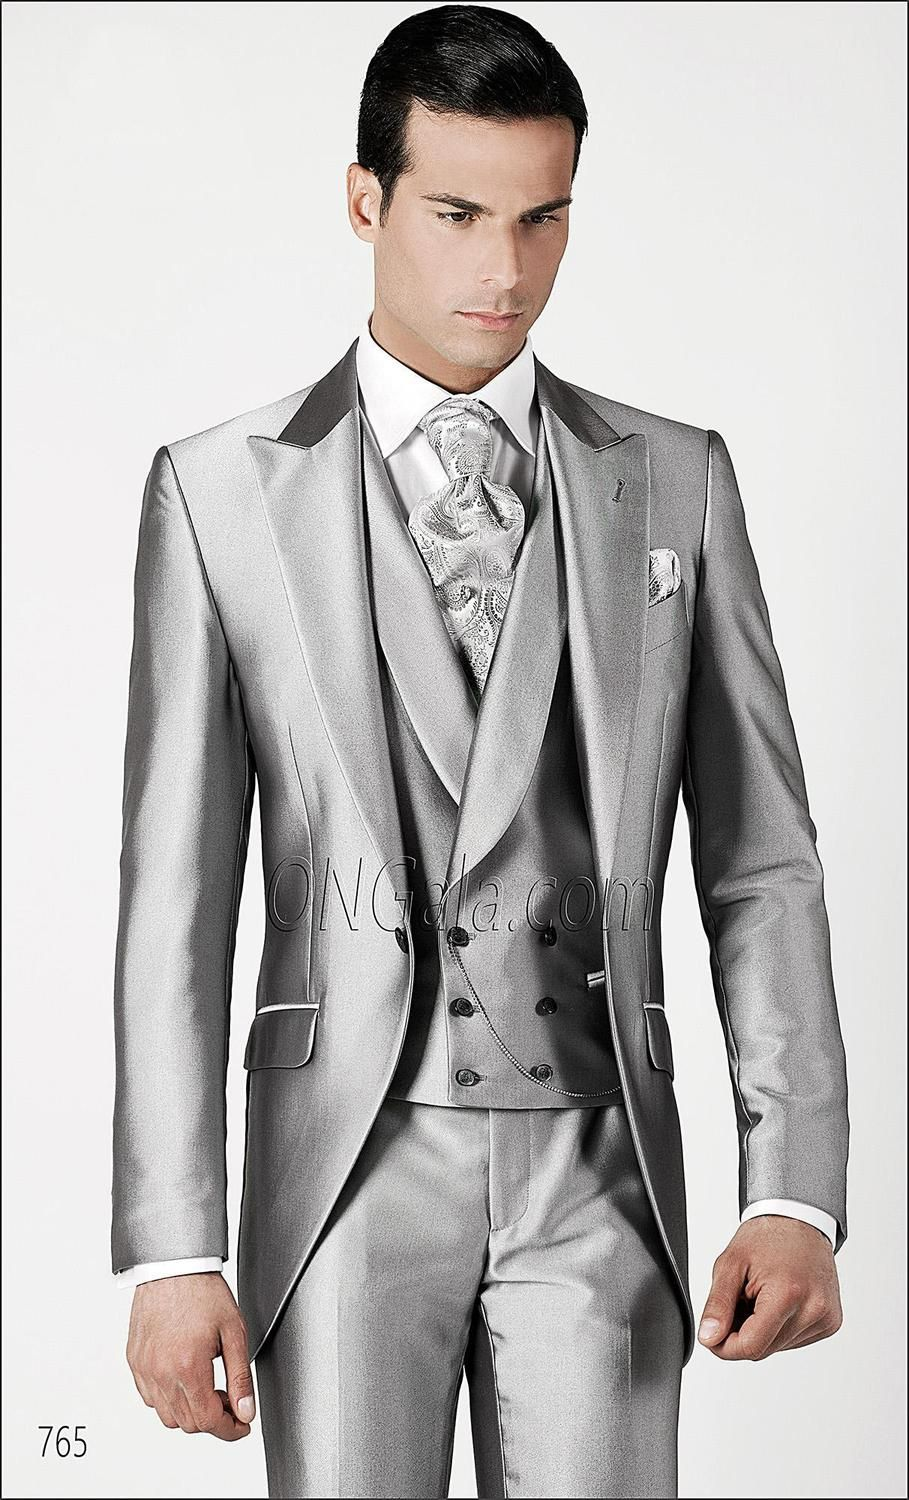 4135560fb9c Custom Made Handsome Groom Tuxedos Peak Lapel Men s Suit Silver  Groomsman Bridegroom Wedding Prom Suits (Jacket+Pants+Tie+Vest)